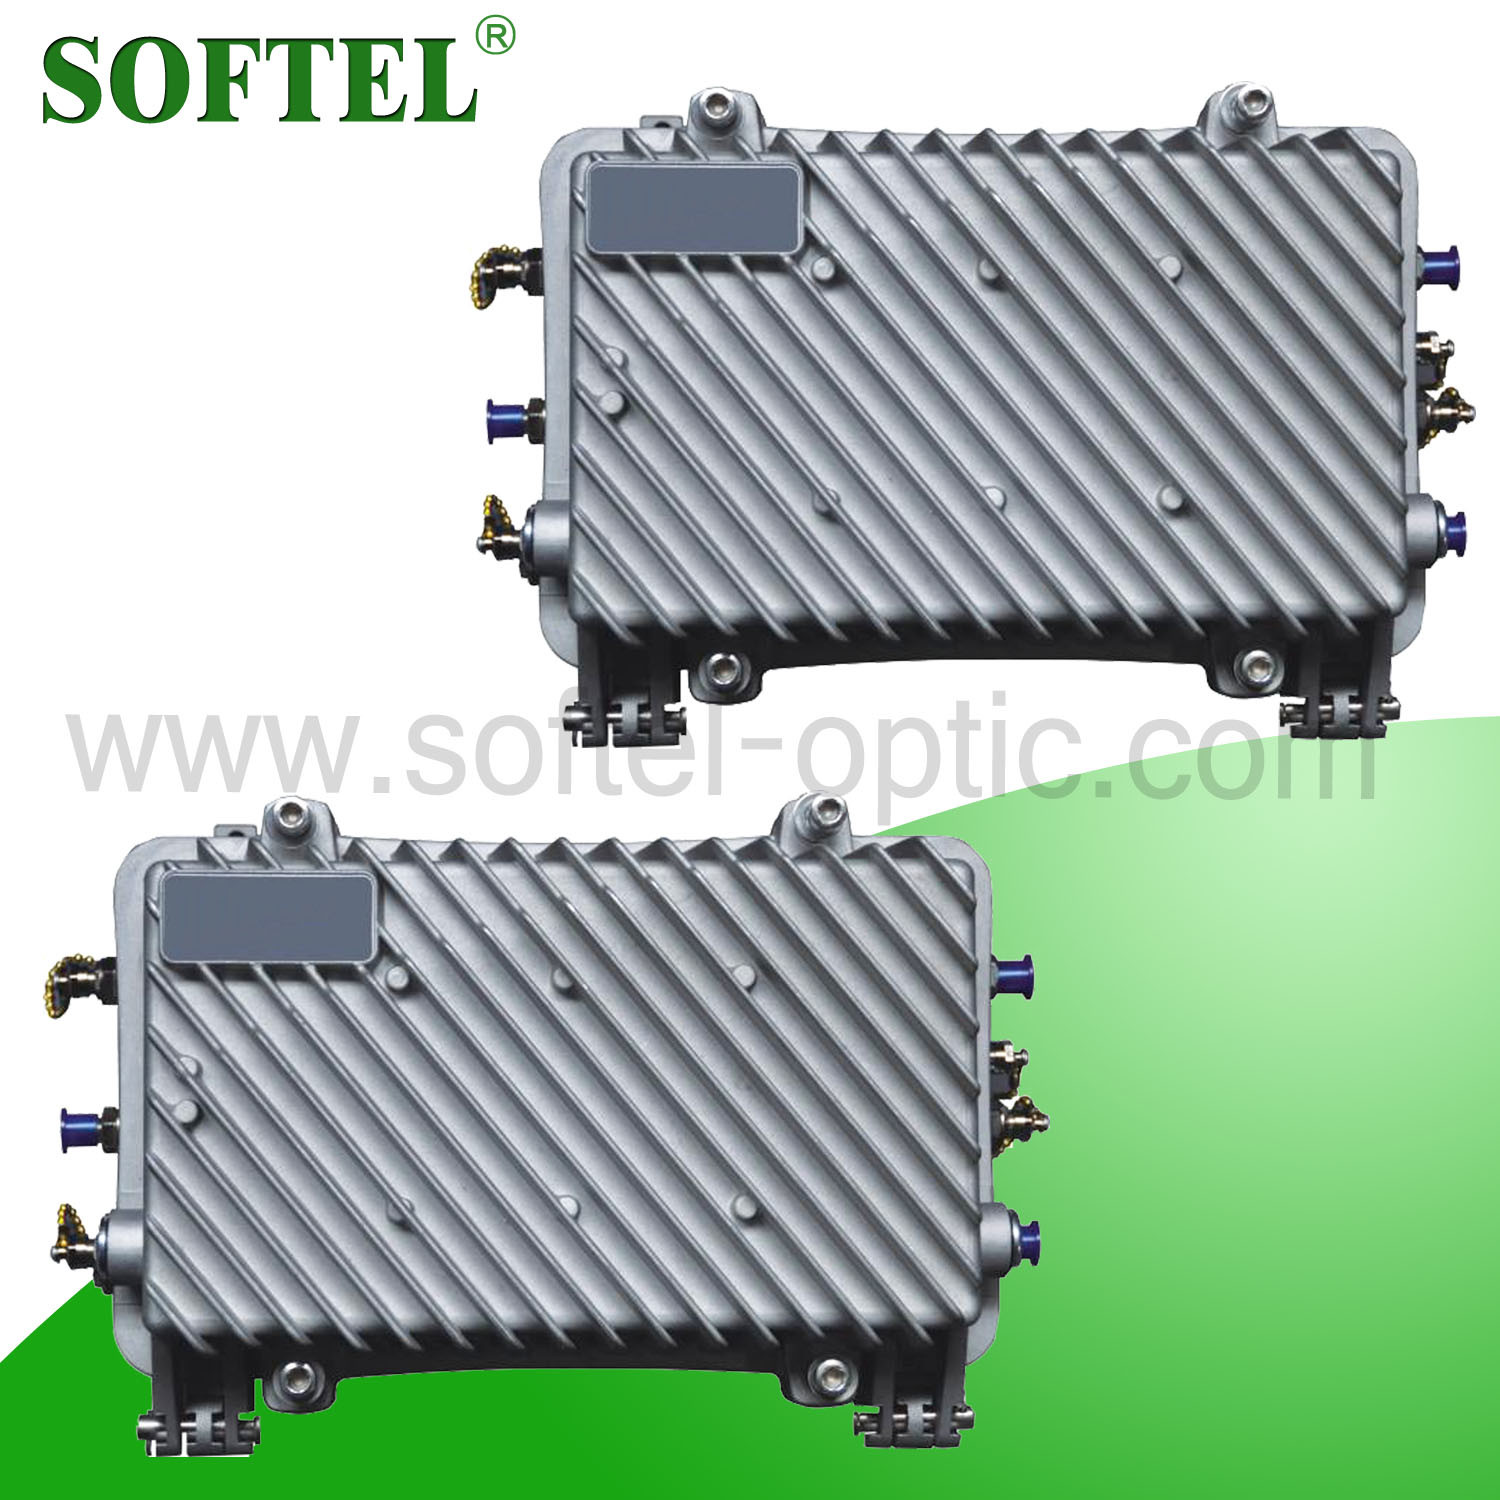 SA1012R 1GHz Two Way Bi-Directional Outdoor CATV Trunk Ampilfier with Reverse 12dB for HFC Network